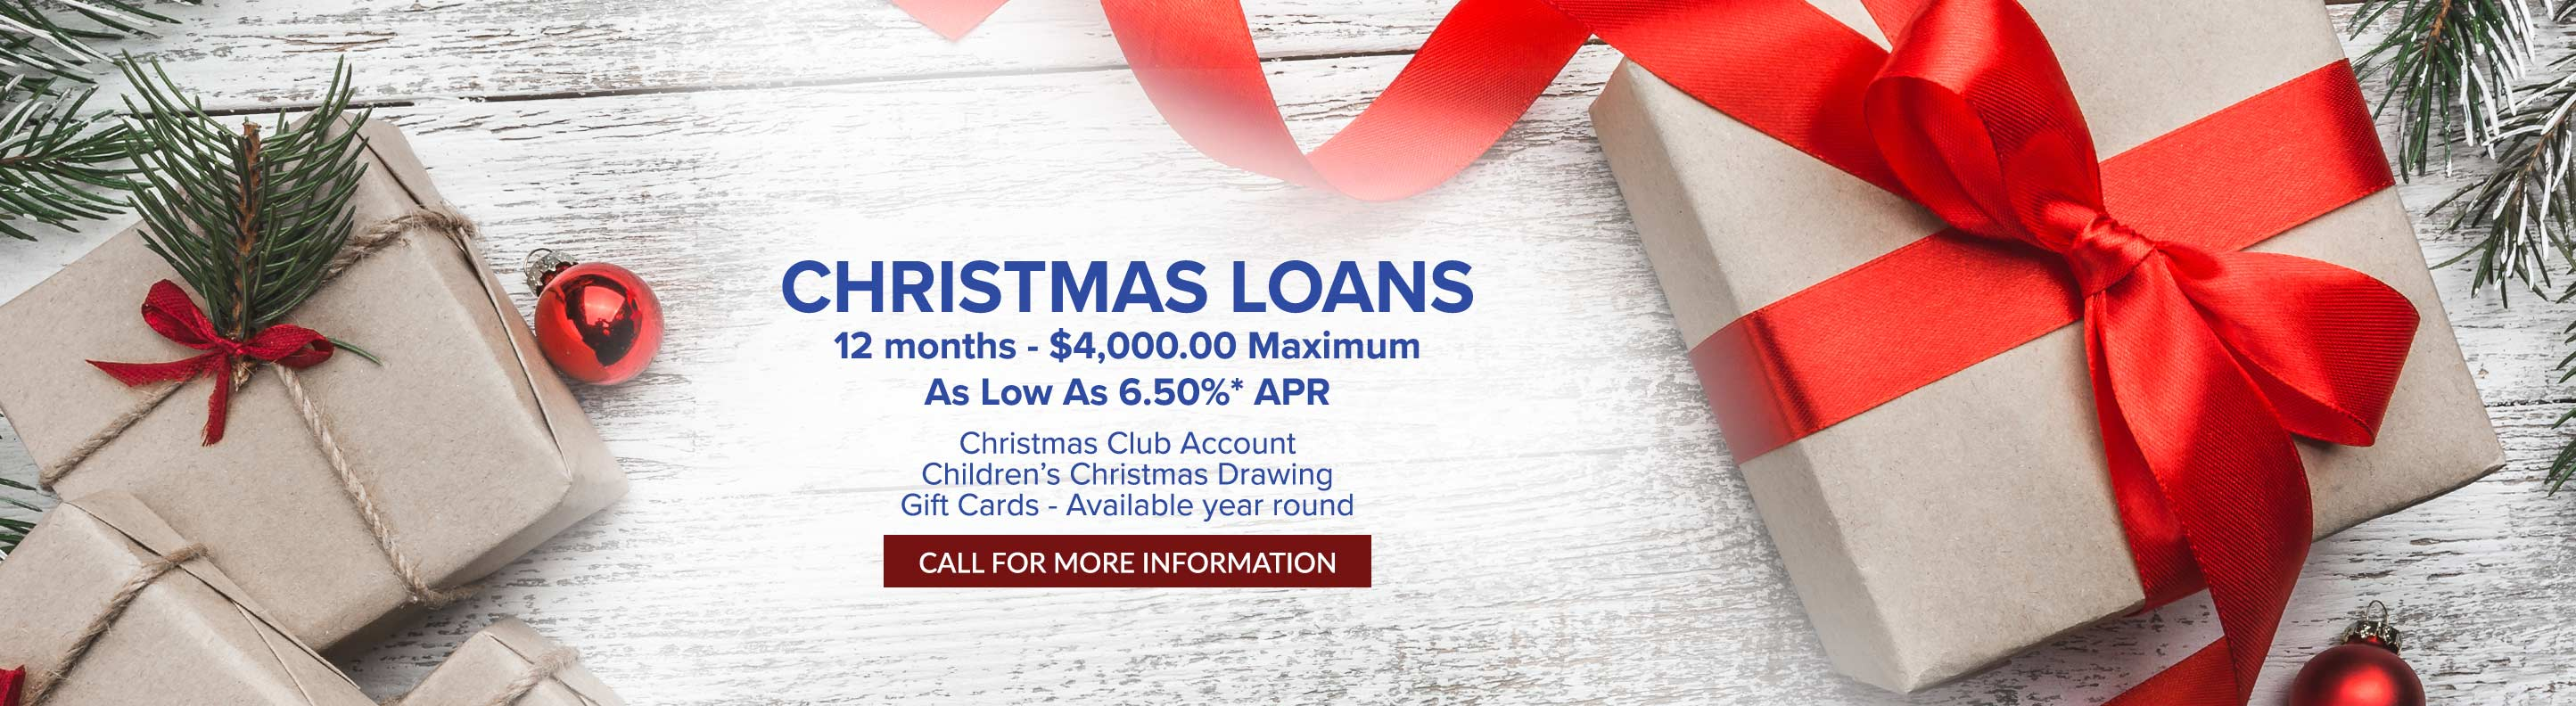 Christmas loans. 12 months - $4,000.00 maximum. As low as 6.50%* APR. Christmas club account. Children's Christmas Drawing. Gift Cards - Available year round. Call for more information.